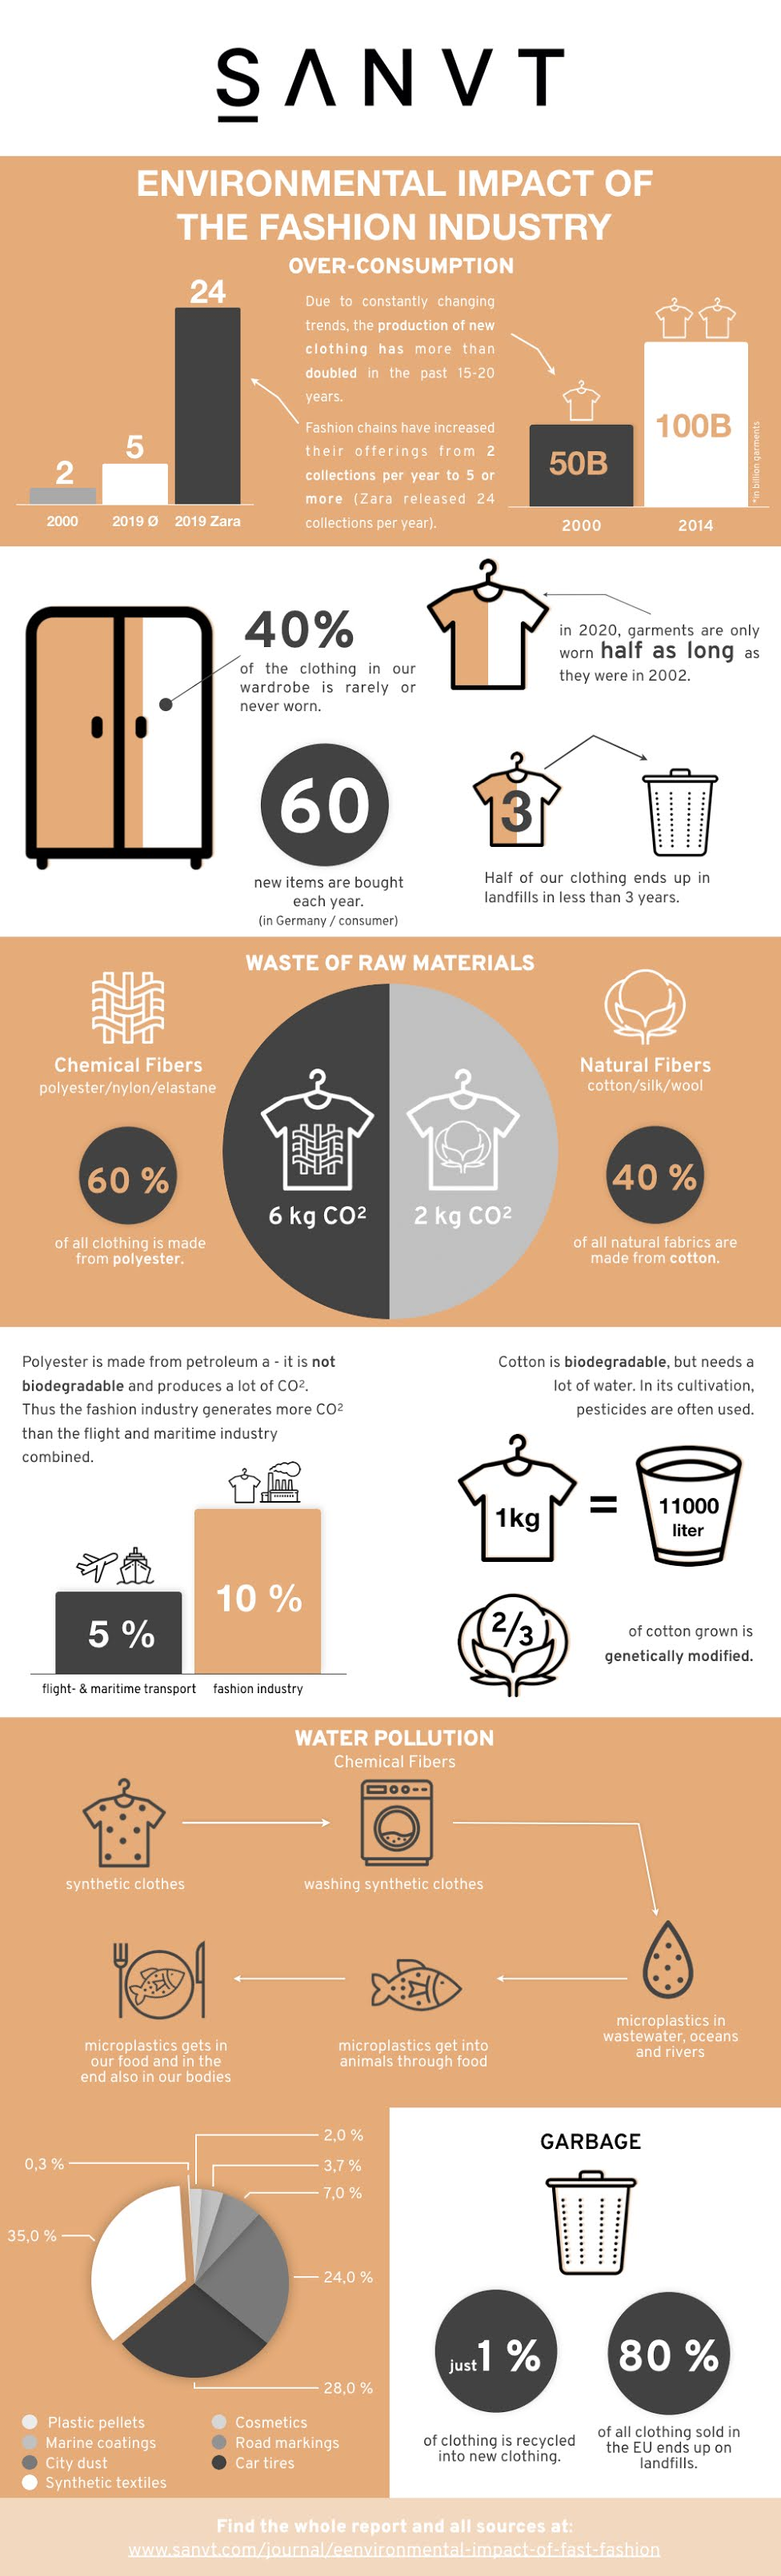 The environmental impact of the fast fashion industry #infographic #Environmental #Fashion Industry #infographics #Environmental impact